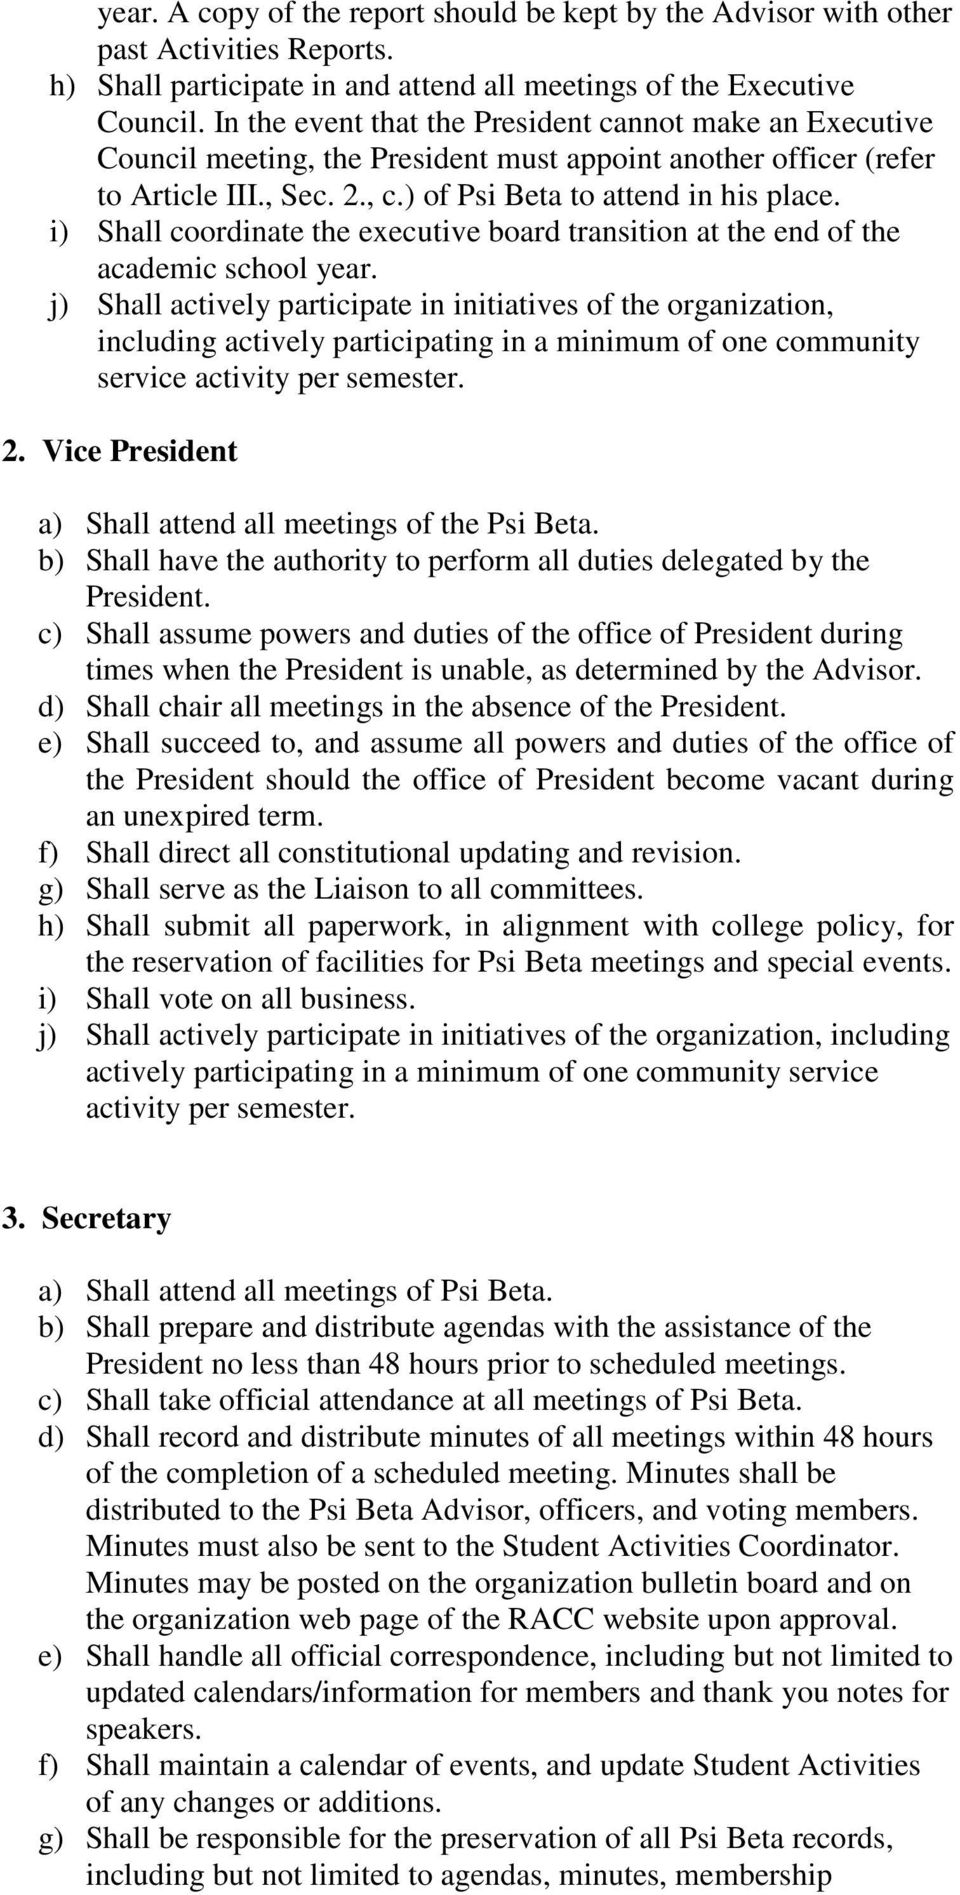 i) Shall coordinate the executive board transition at the end of the academic school year.